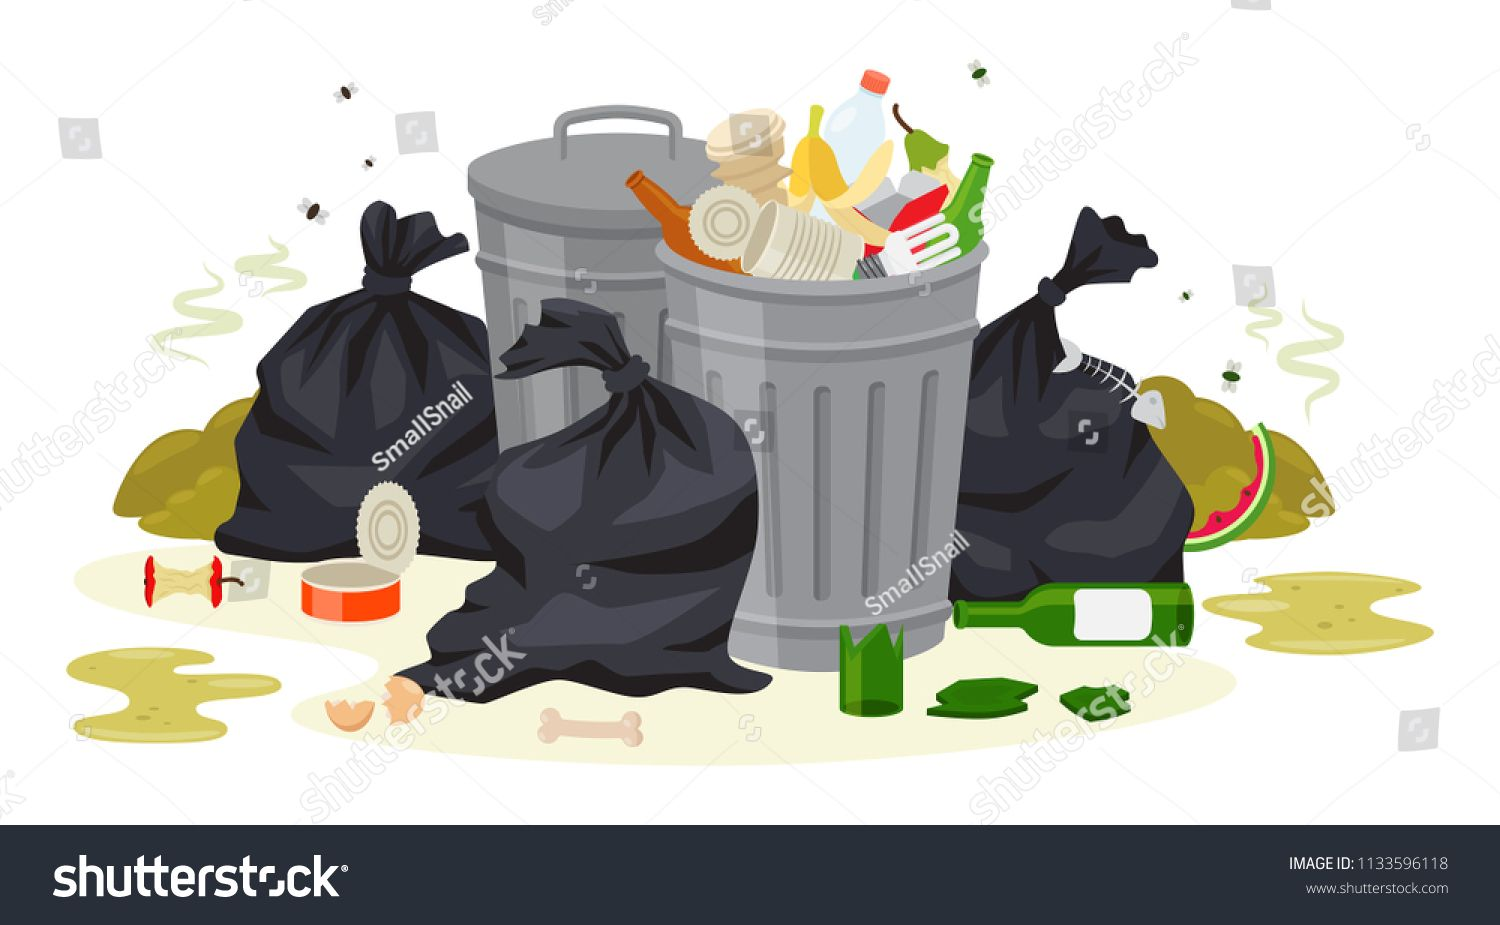 Garbage clipart pile stuff. Pin on project scircle